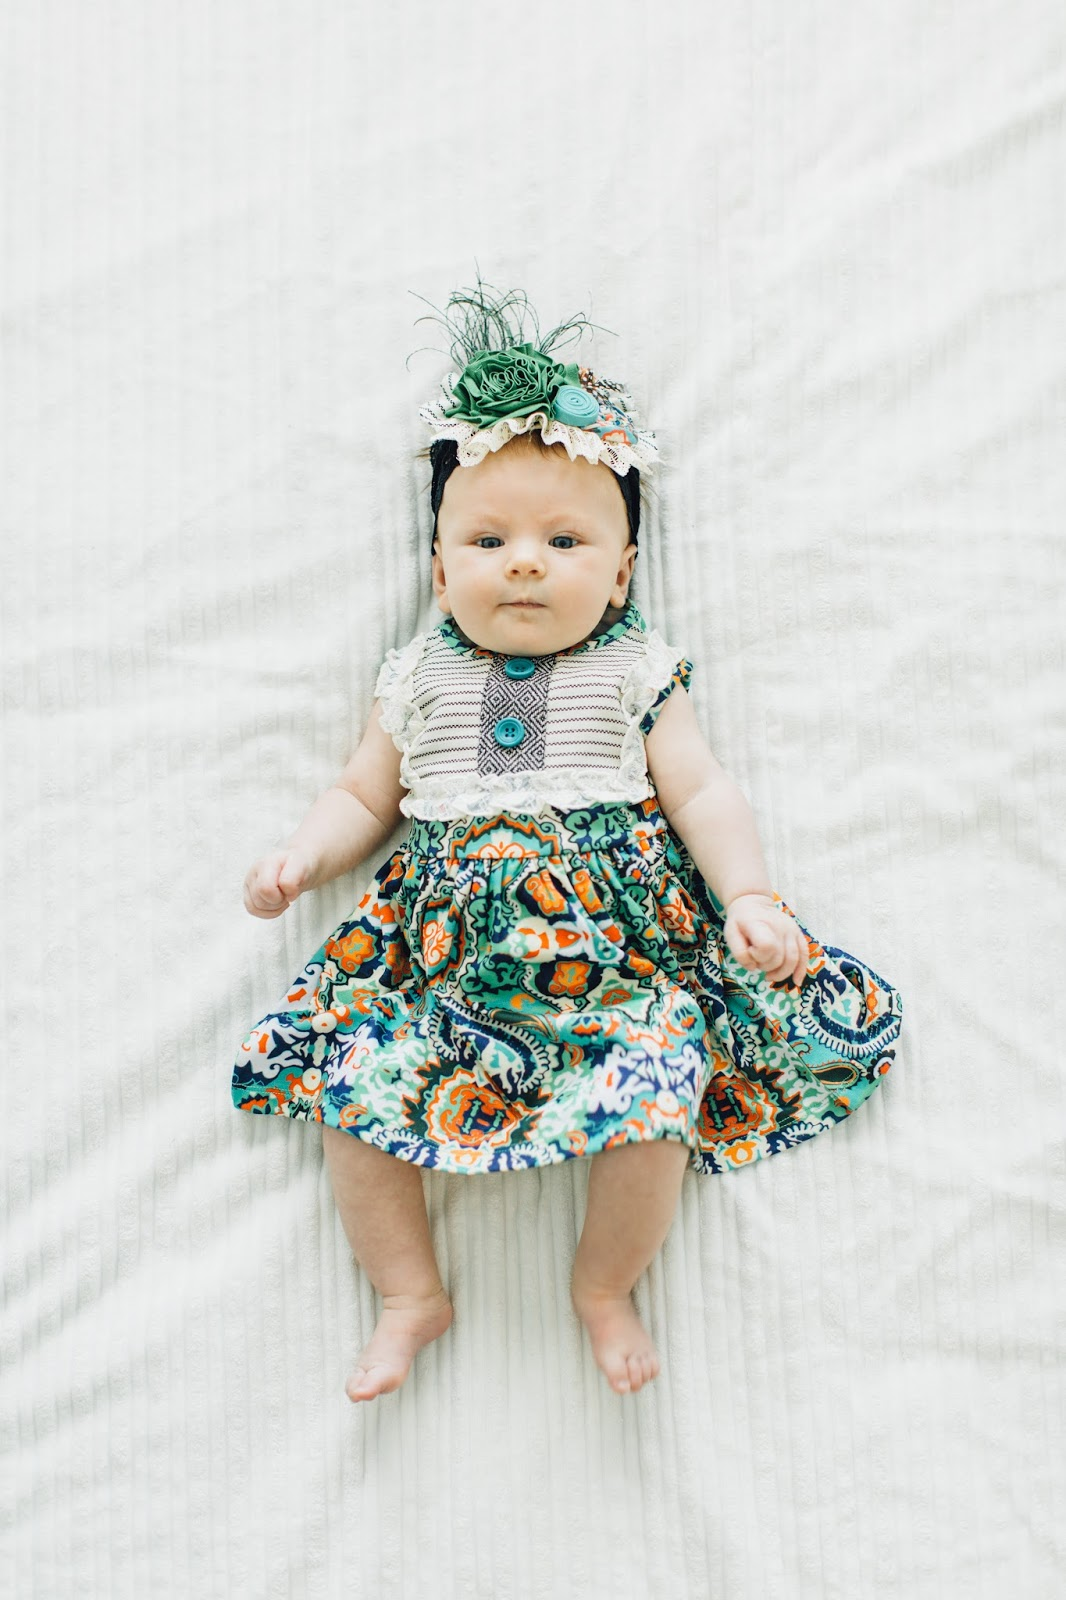 Baby Spring Dress, Colorful Baby Dress, Cute Baby